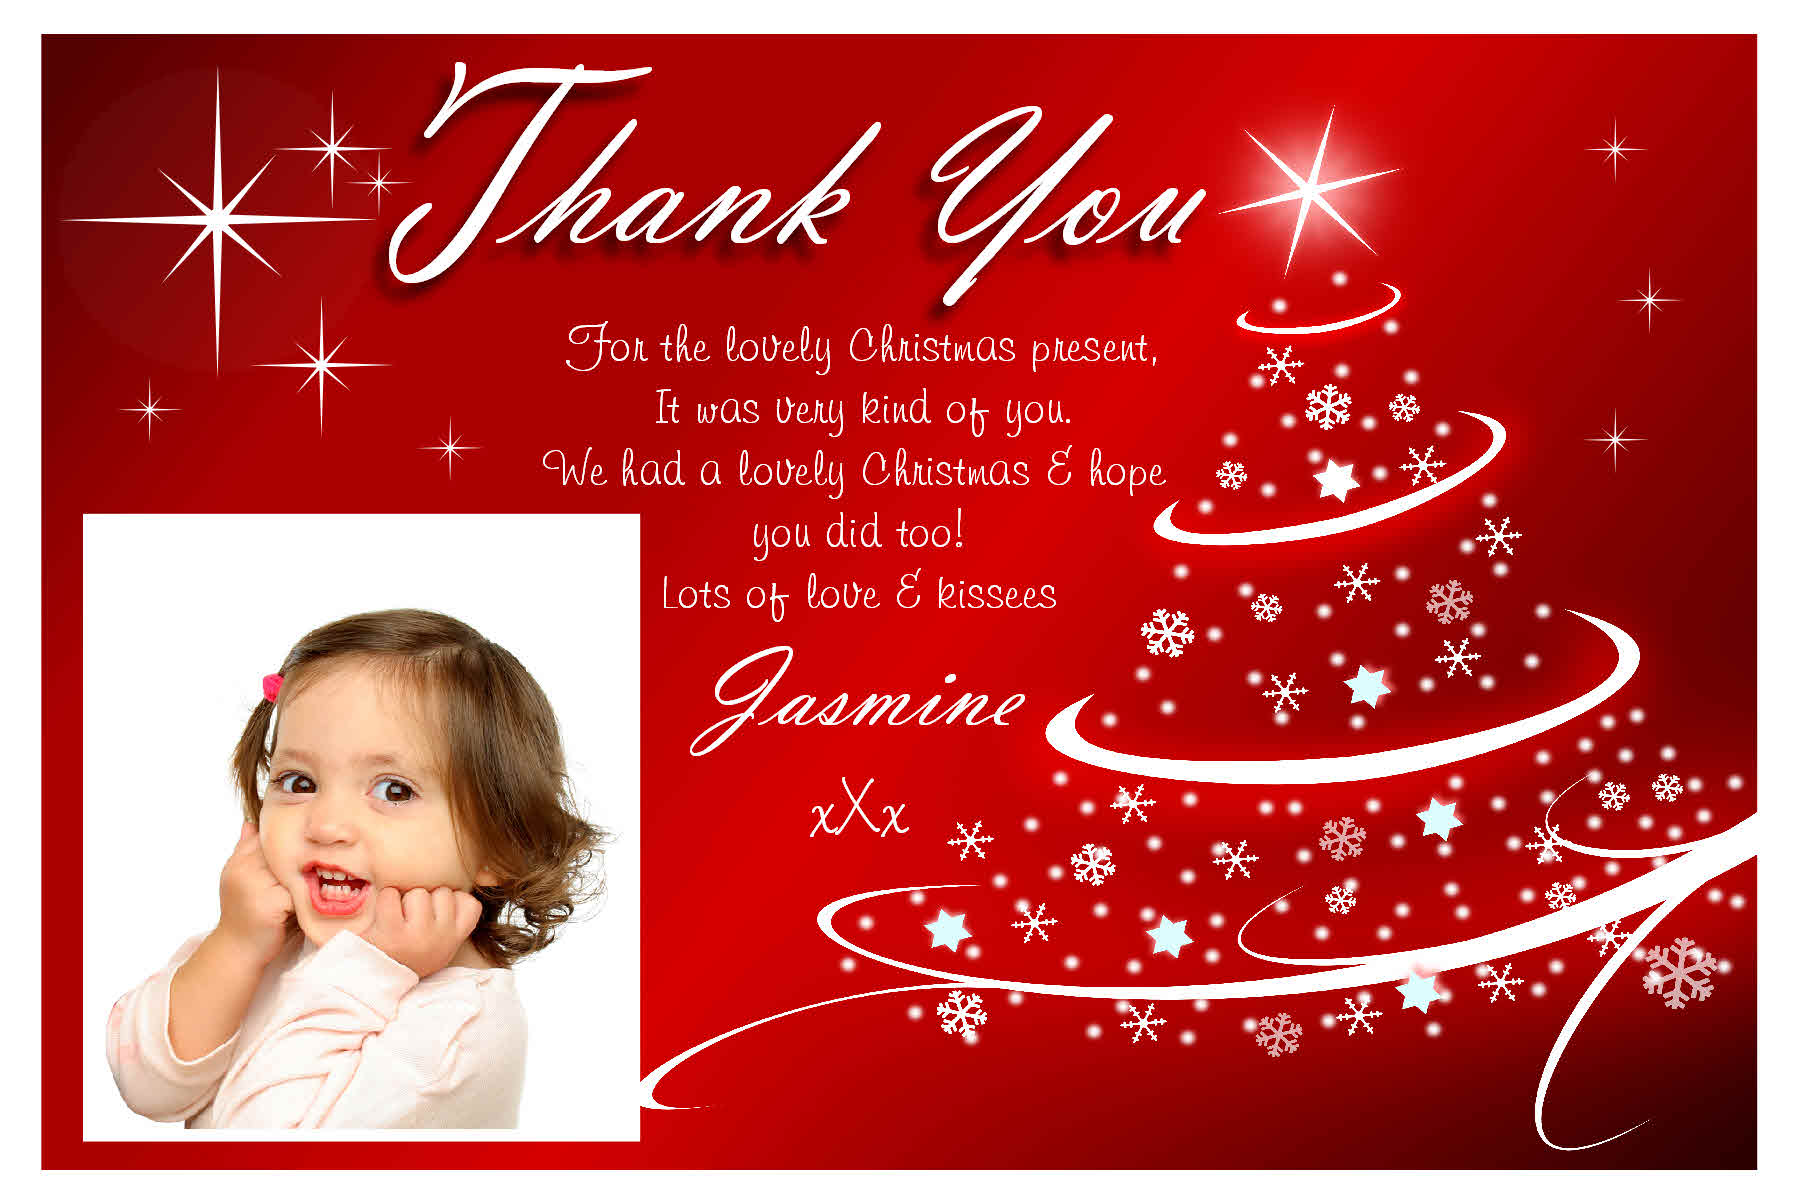 Thank You For The Christmas Gift Quotes Ywagby Supernewyear Site